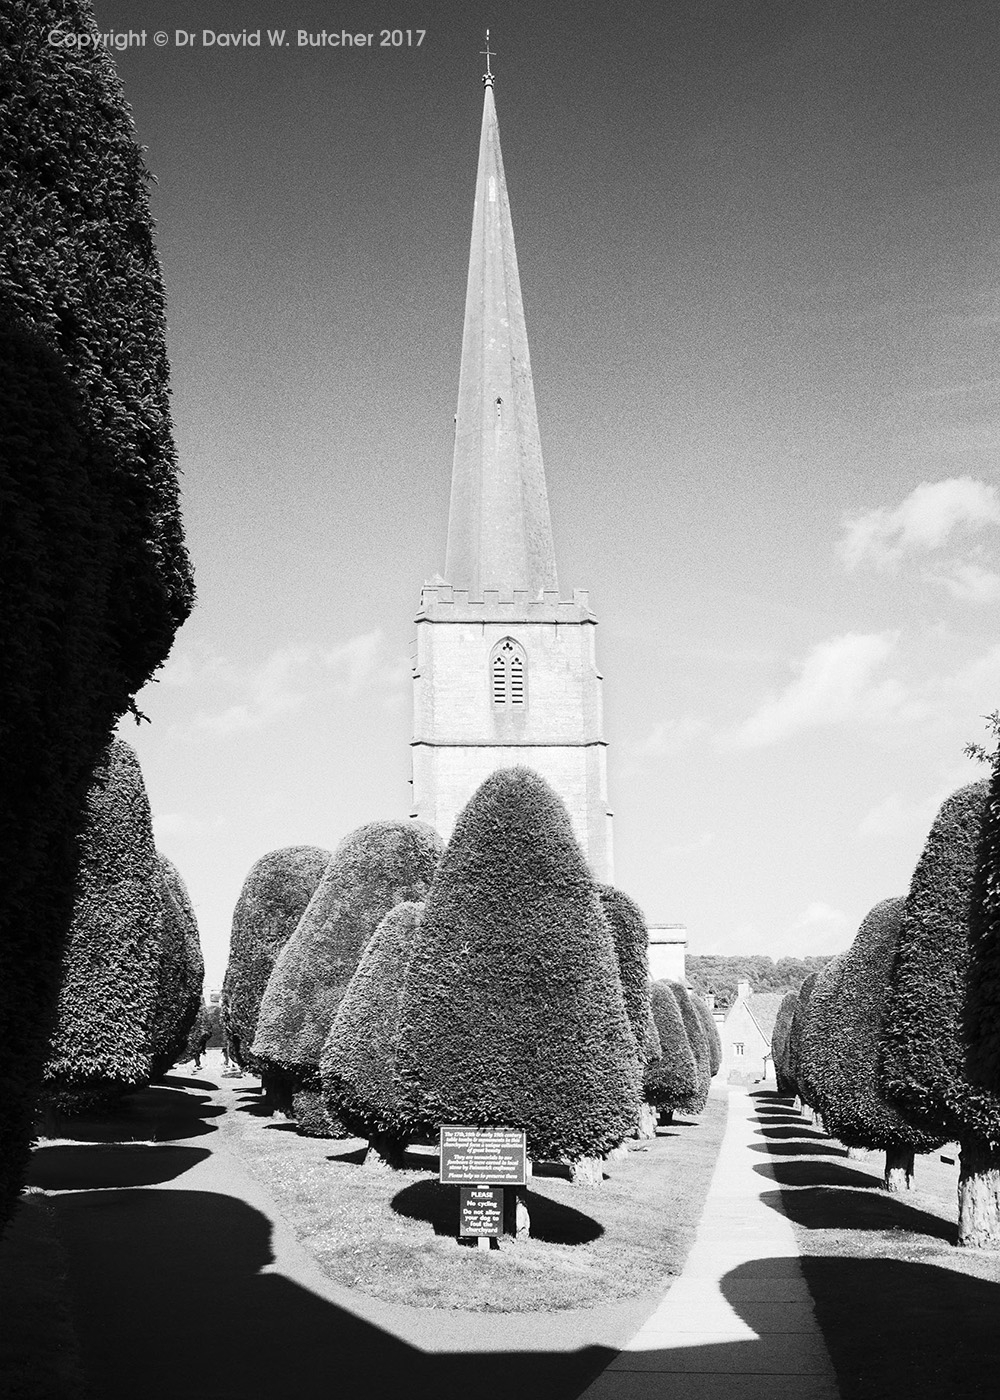 Painswick Church and Yew Trees, near Gloucester, Cotswolds, England